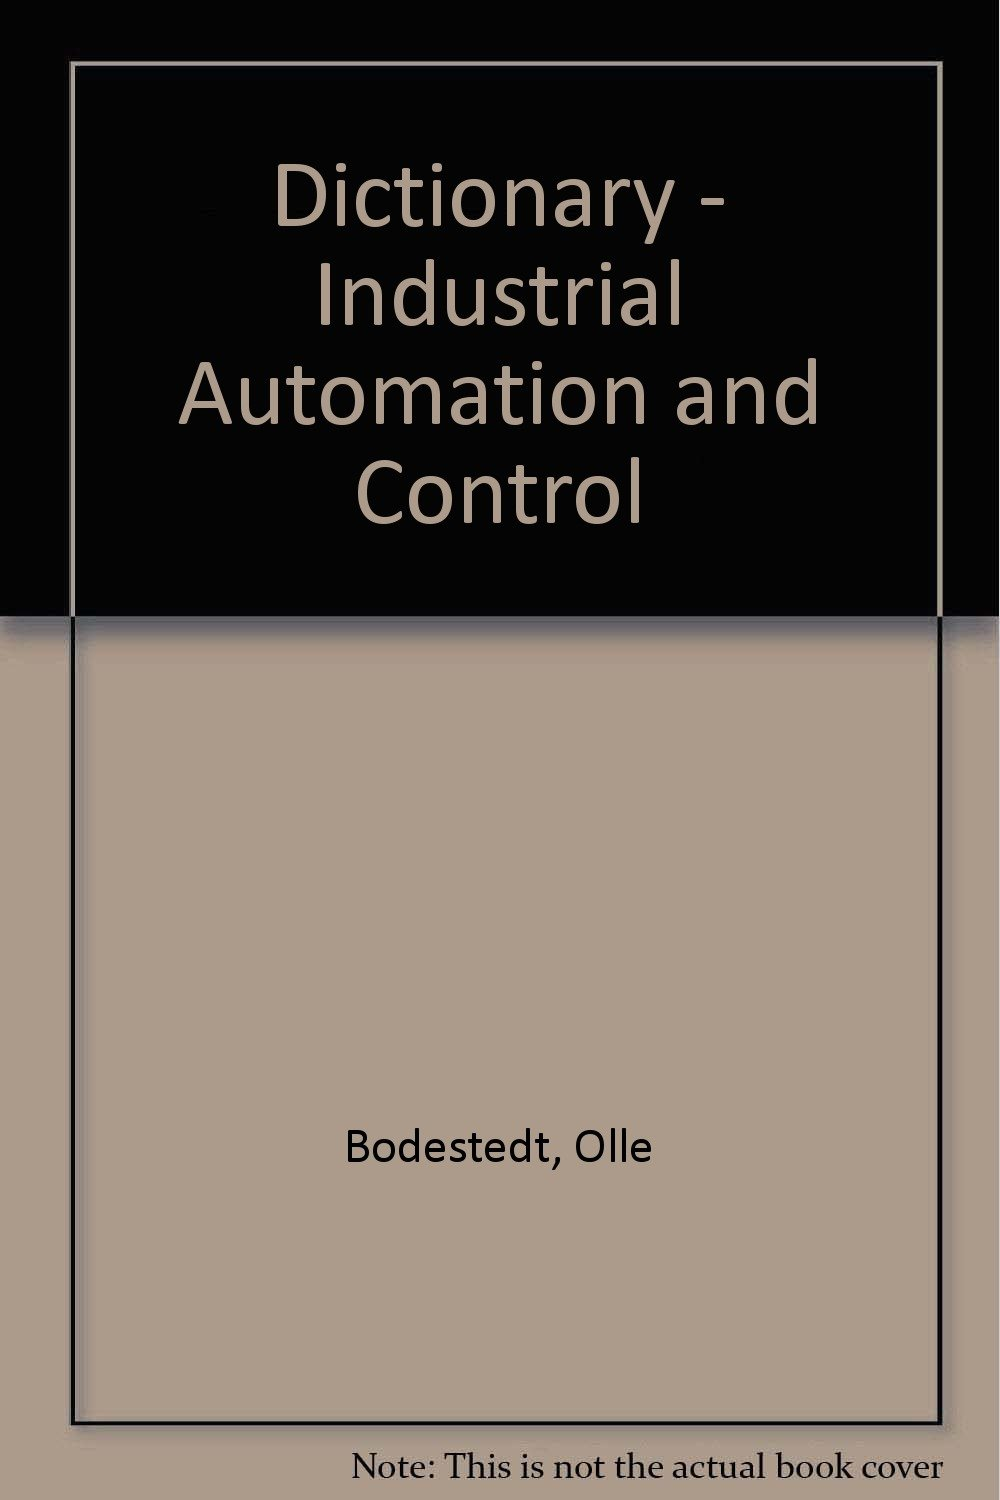 Dictionary - Industrial Automation and Control: Amazon co uk